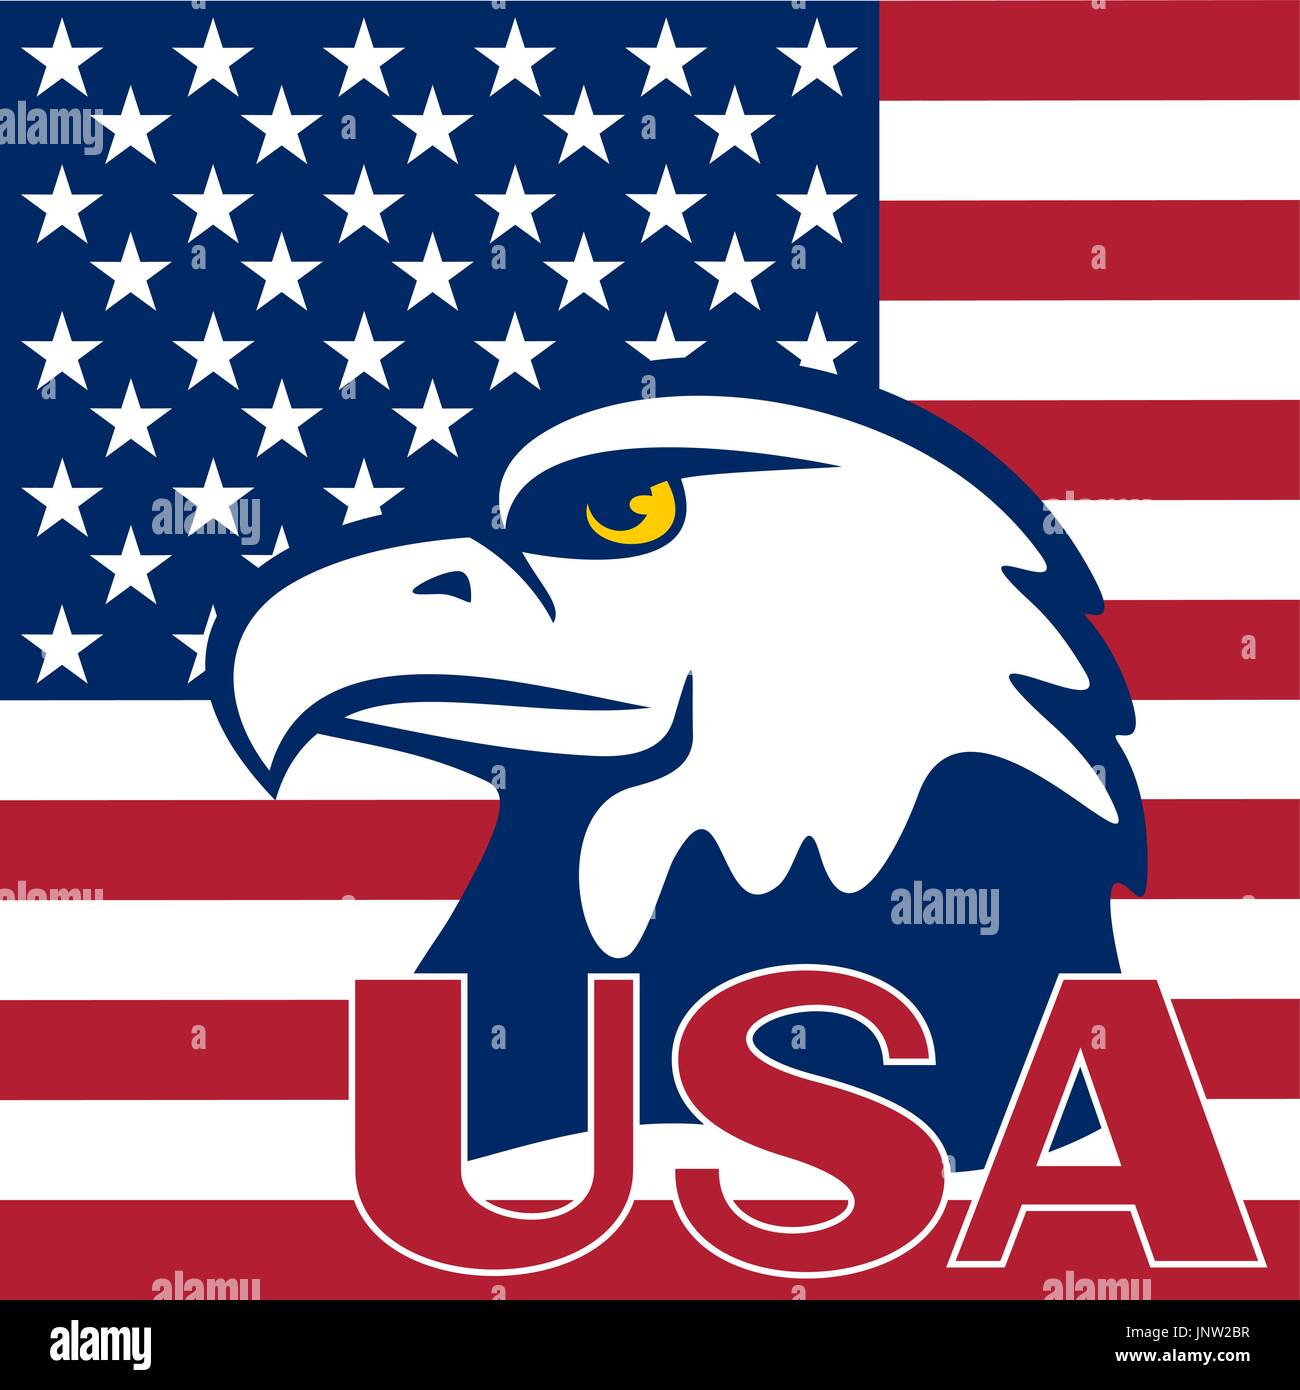 Eagle Is Located On A Flag Of The Usa Symbols Of The United States